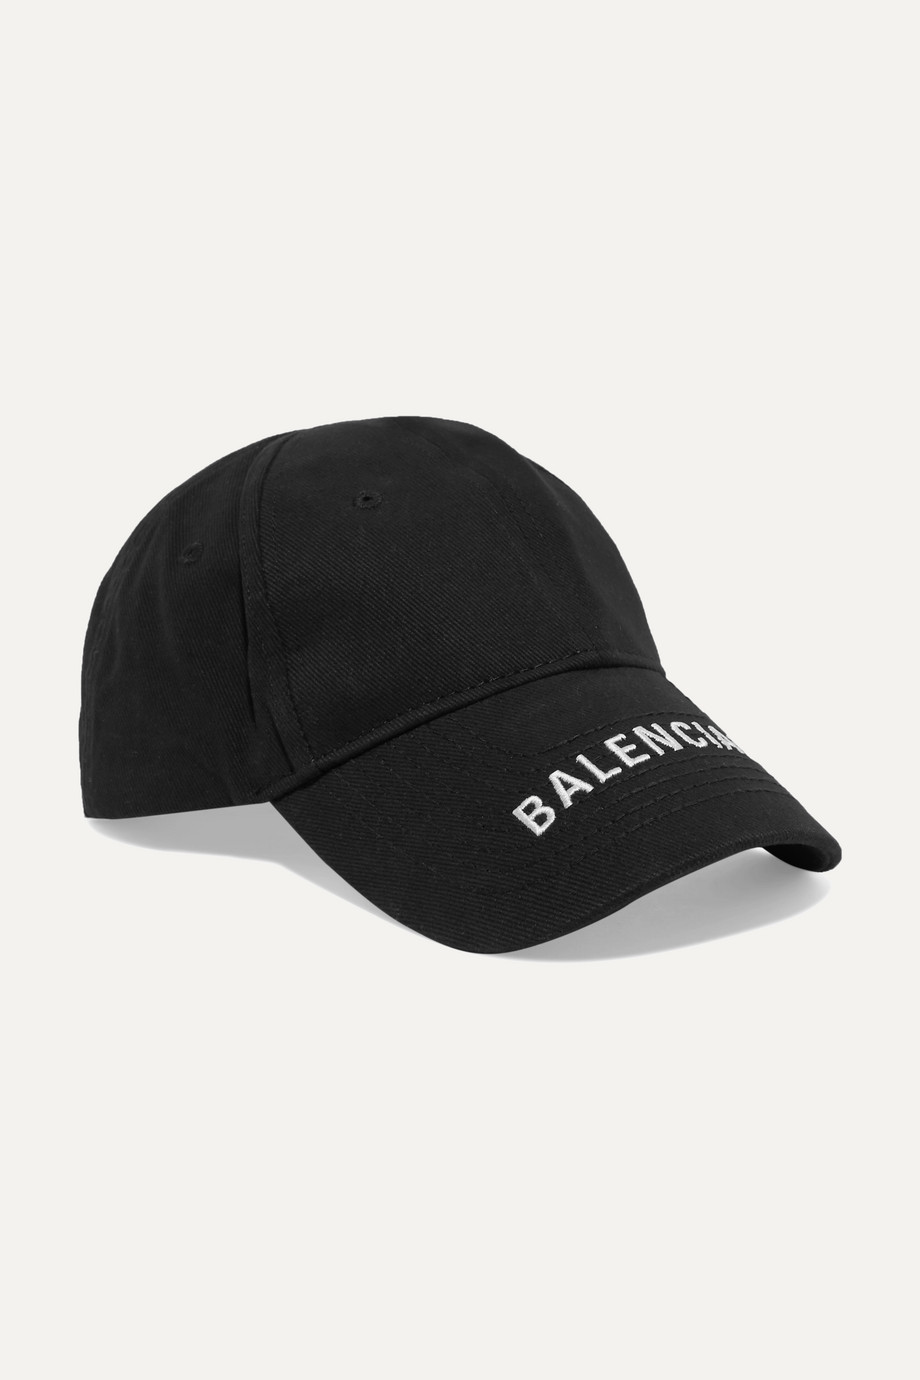 Exact Product: Embroidered cotton-twill baseball cap, Brand: Balenciaga, Available on: net-a-porter.com, Price: $450